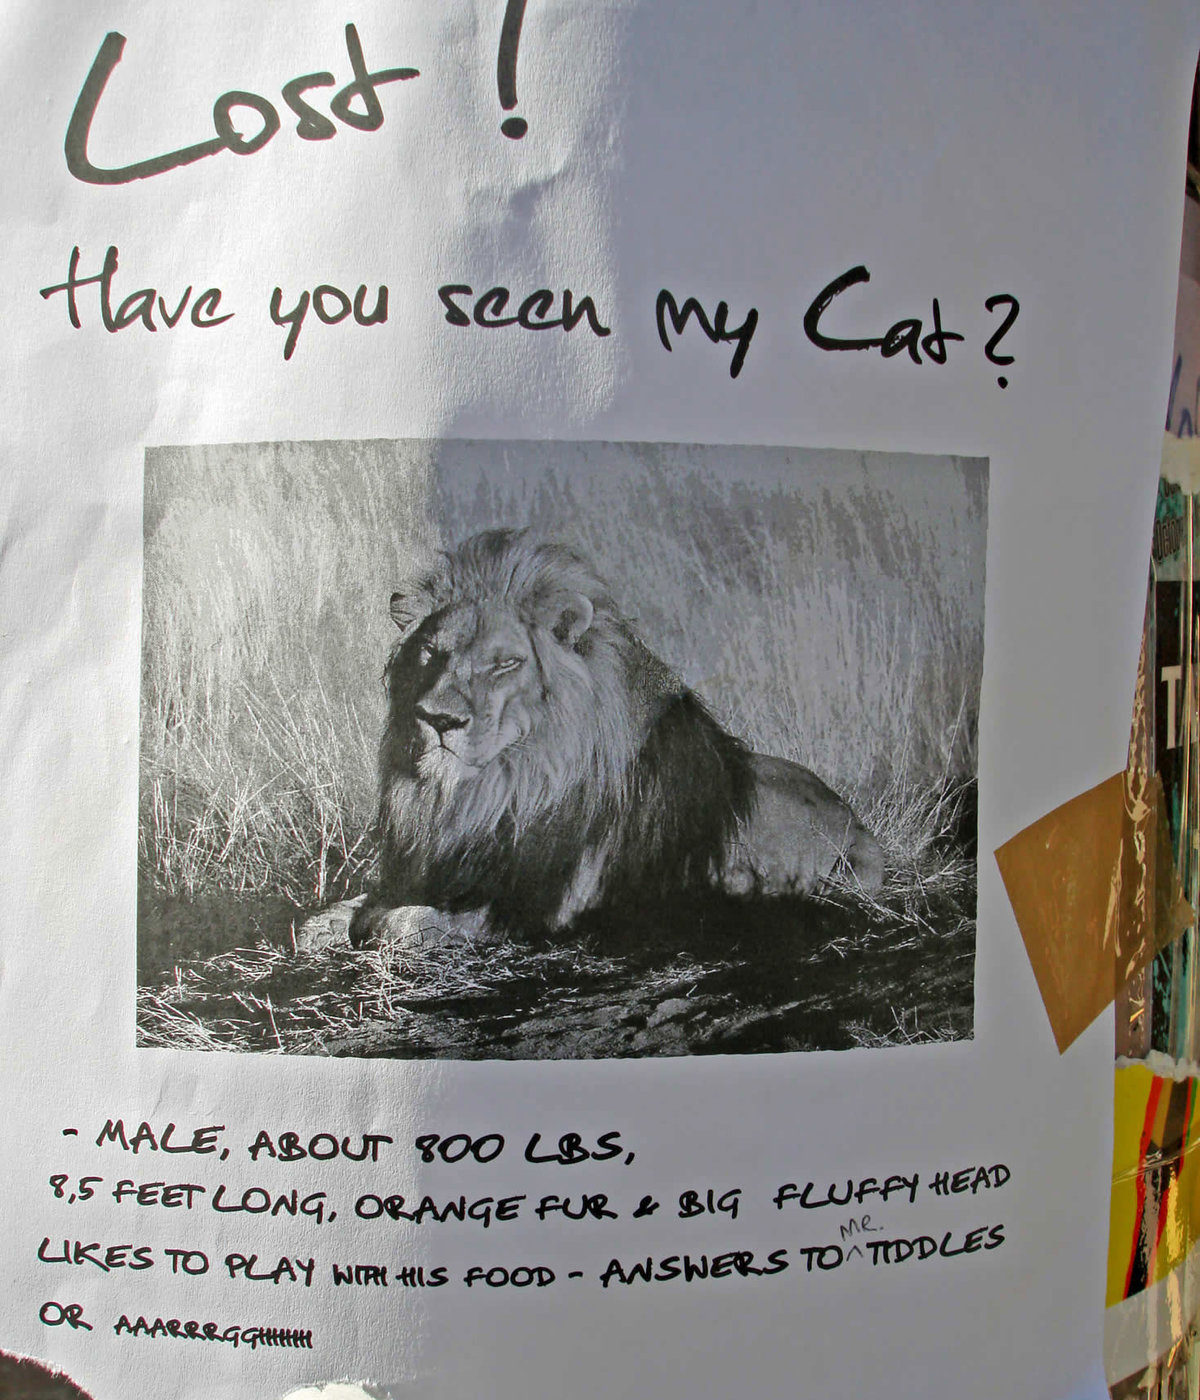 Sign says that lion is lost